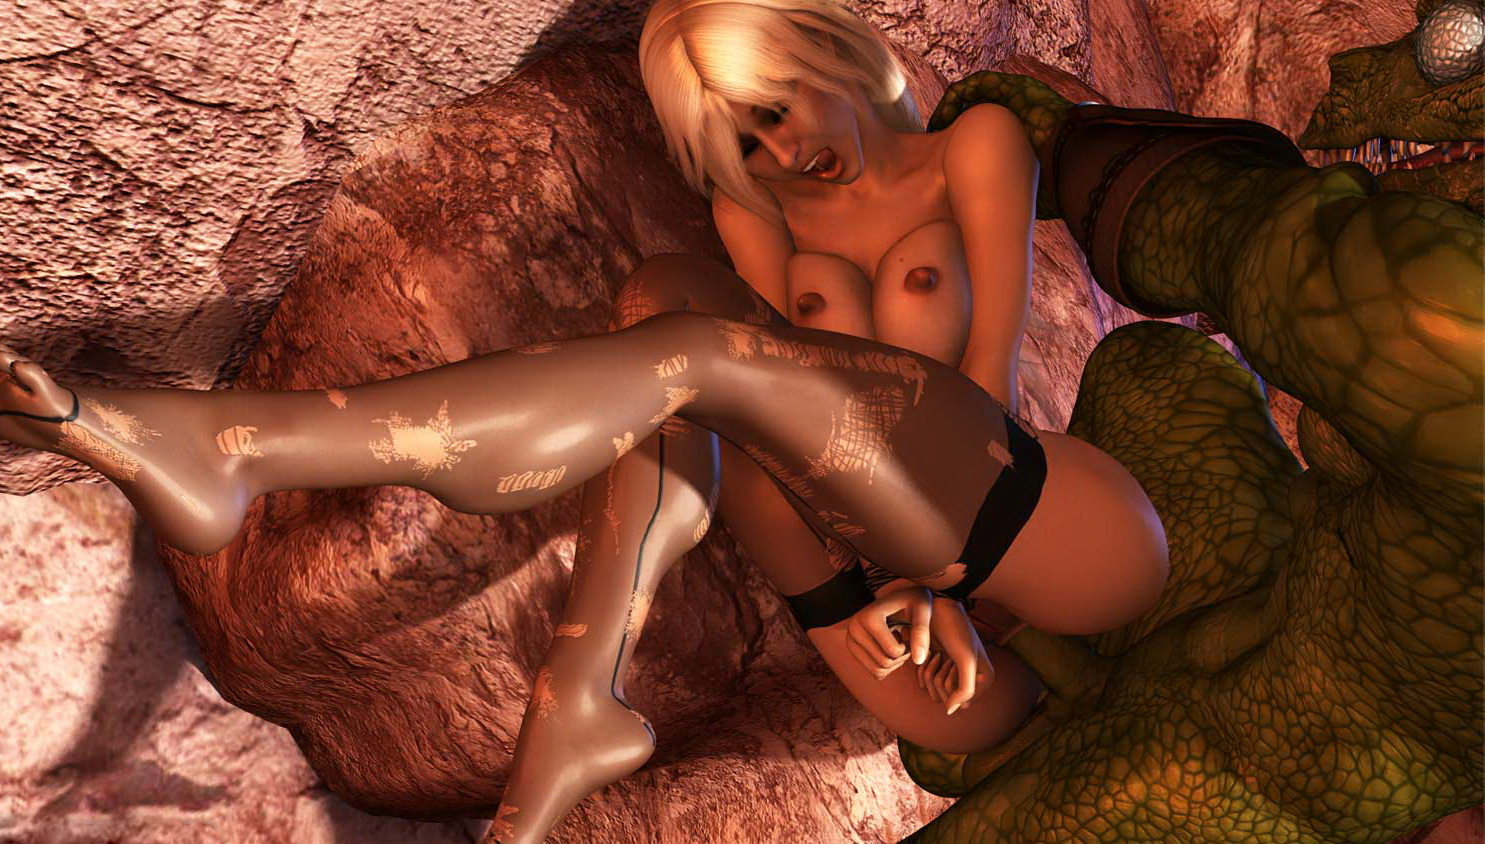 Fuck alien sex video download anime photos